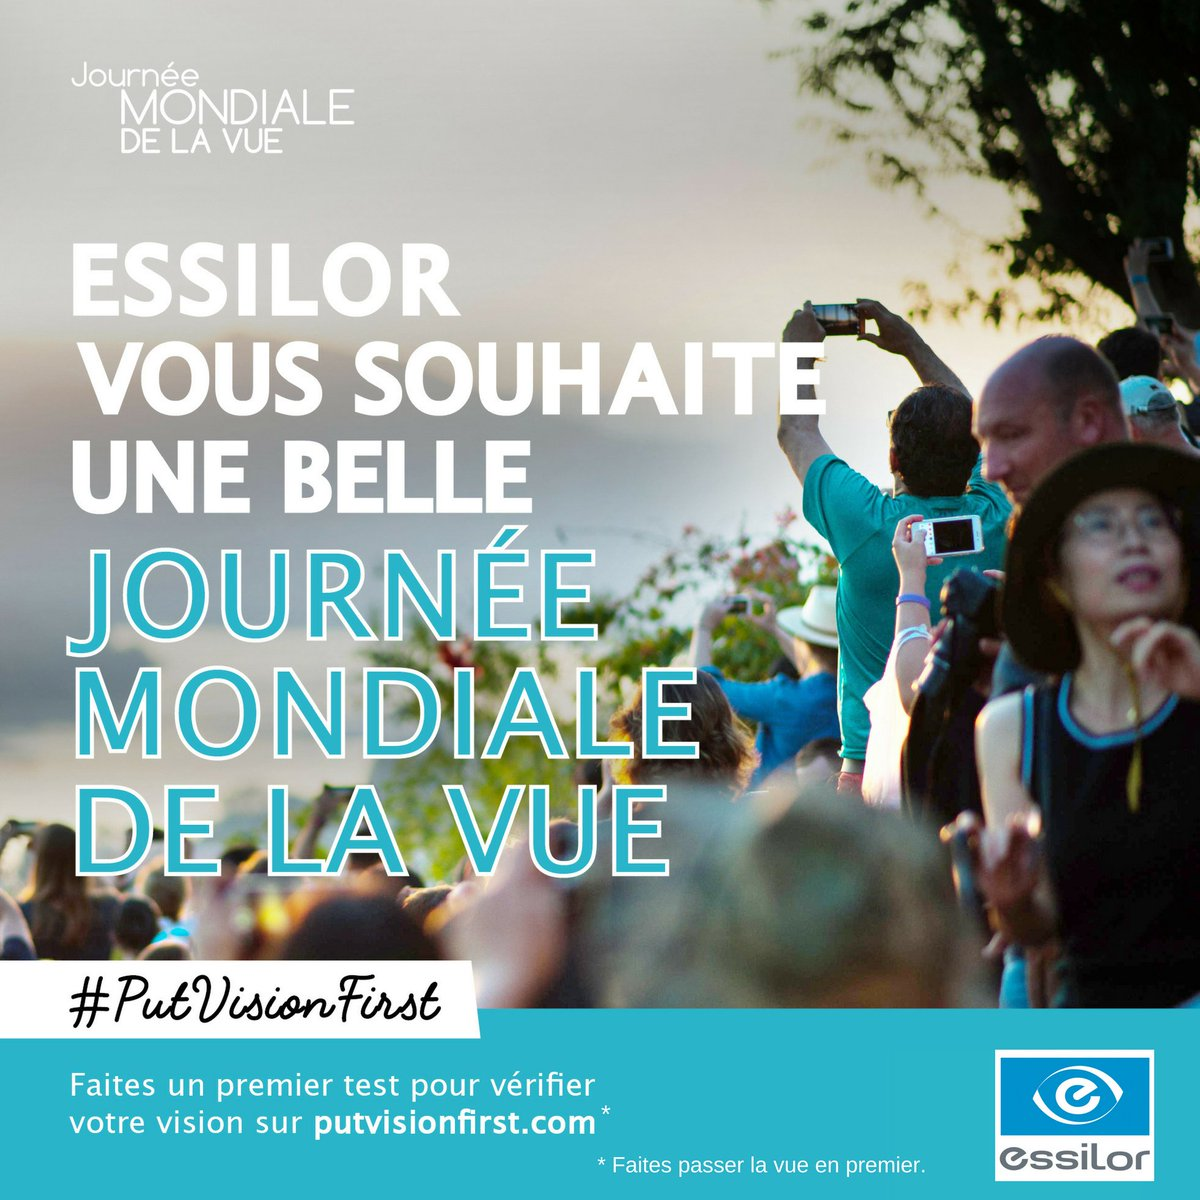 2c890099ae Essilor France on Twitter: